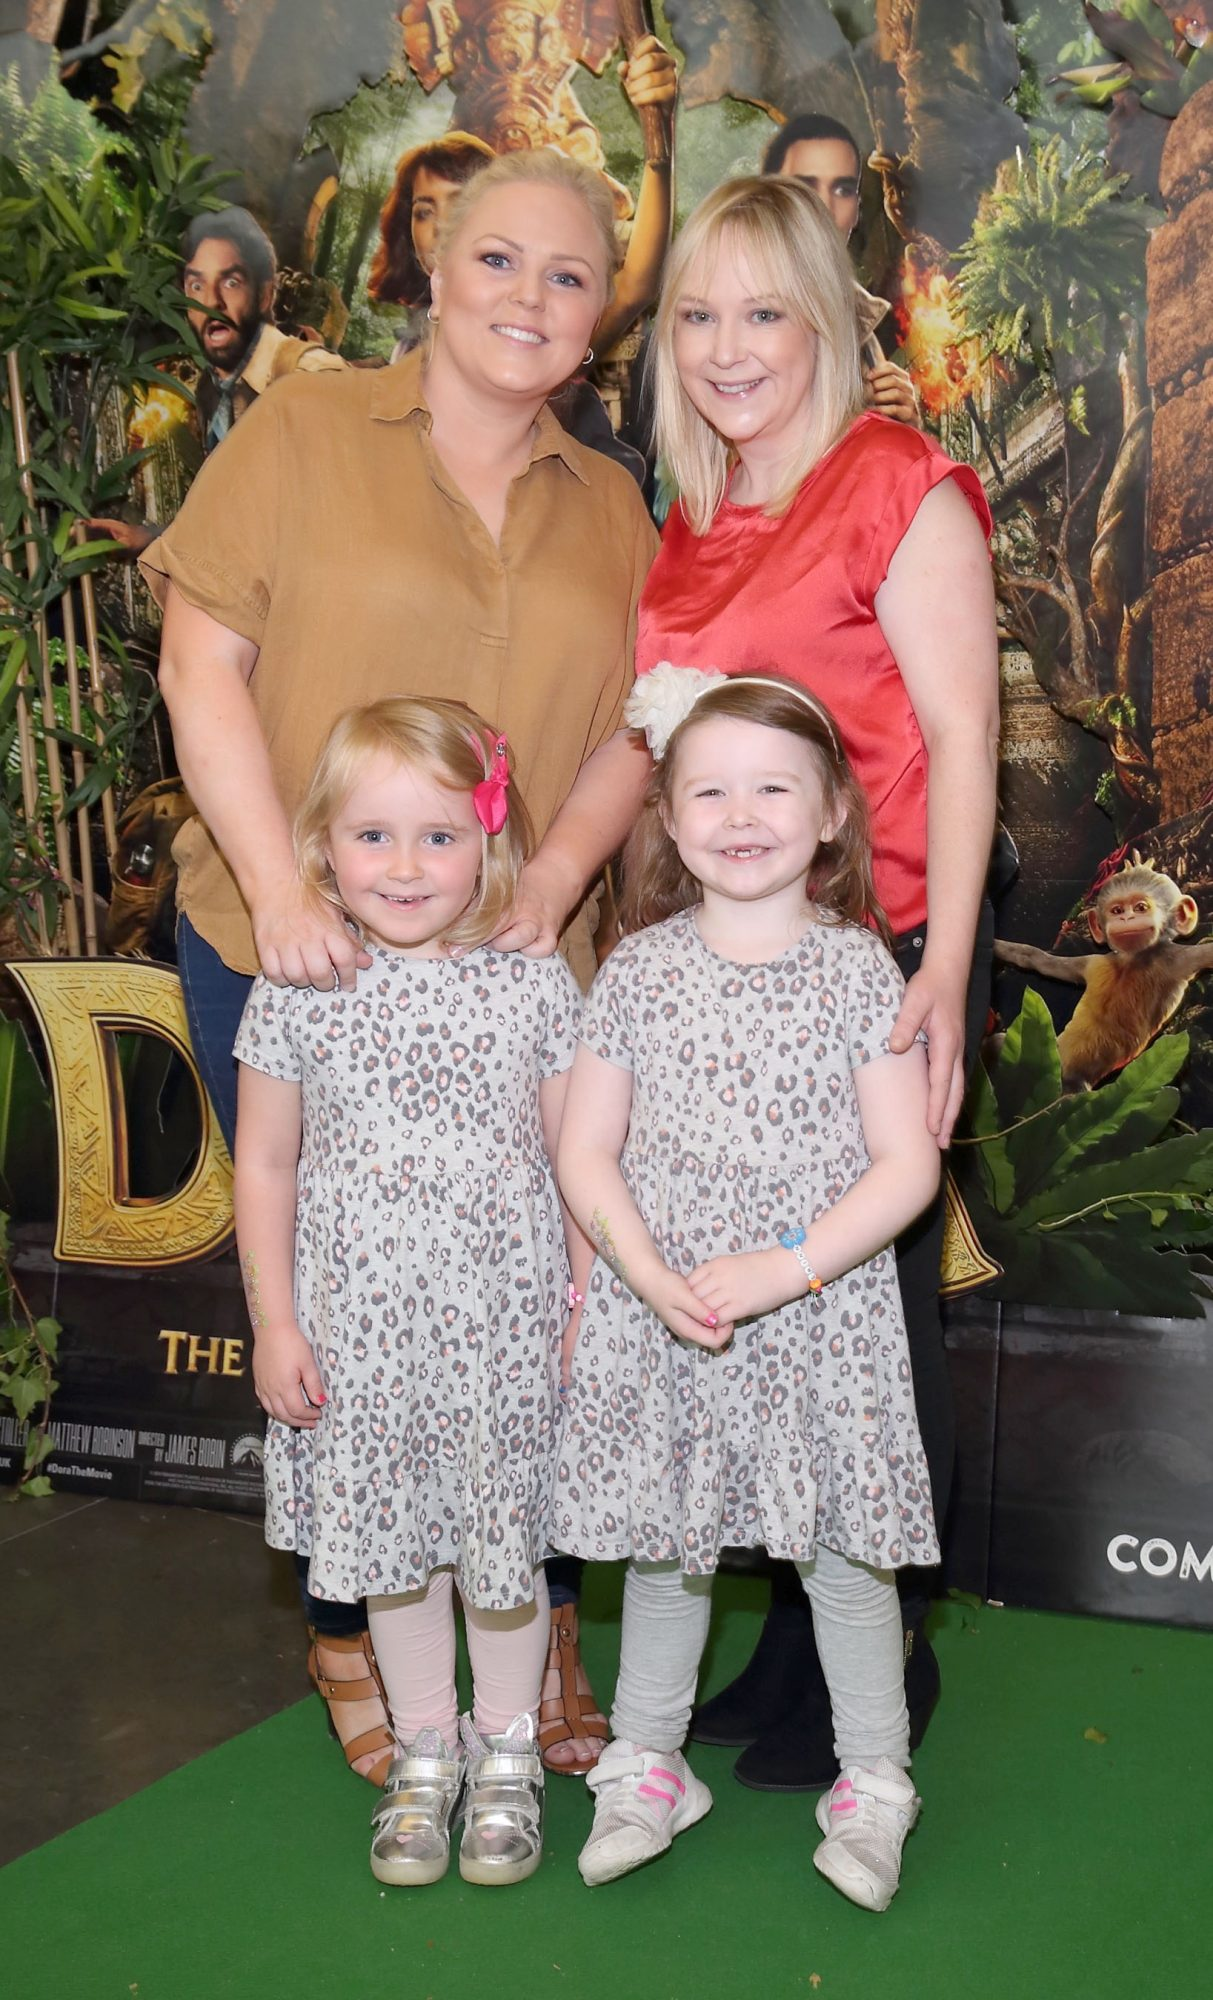 Niamh Sherwin, Clare Sherwin, Lily Murray and Erinn Malone  at the special preview screening of Dora and the Lost City of Gold at the Odeon Cinema in Point Square,Dublin. Pic Brian McEvoy Photography